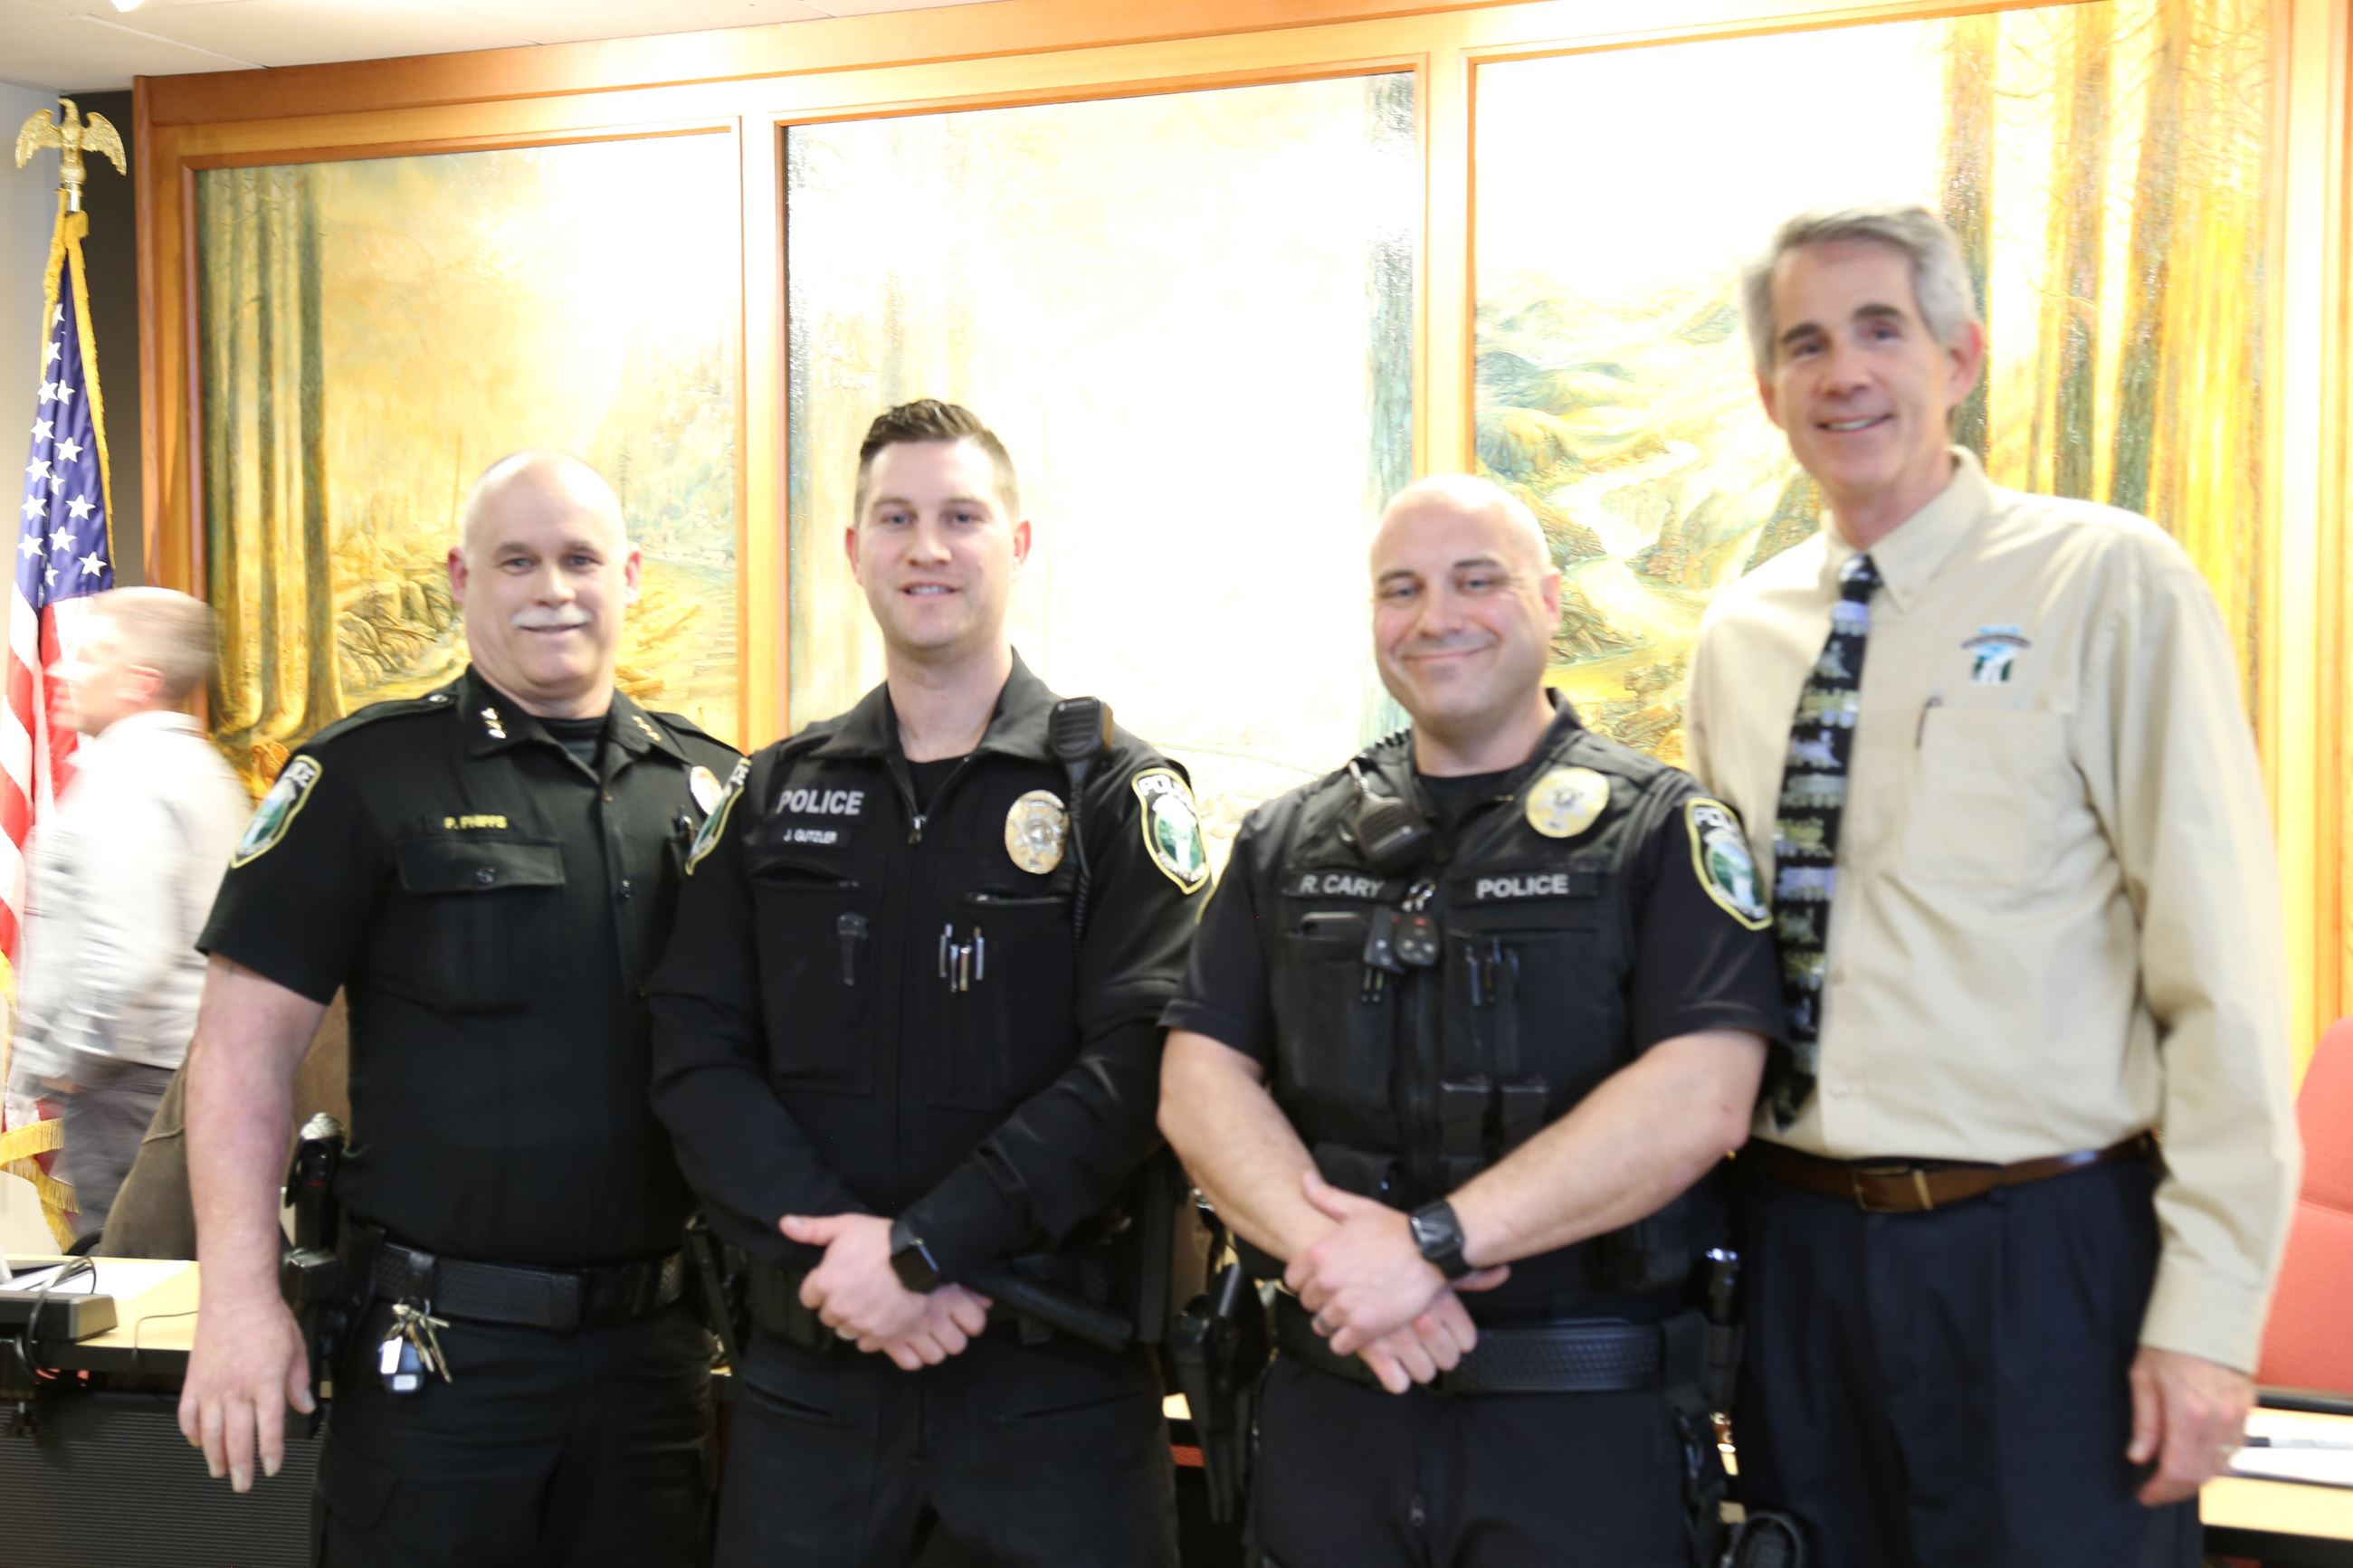 This is a picture of Snoqualmie Police Chief Perry Phipps, Officer Jayce Gutzler, Officer Rick Cary,